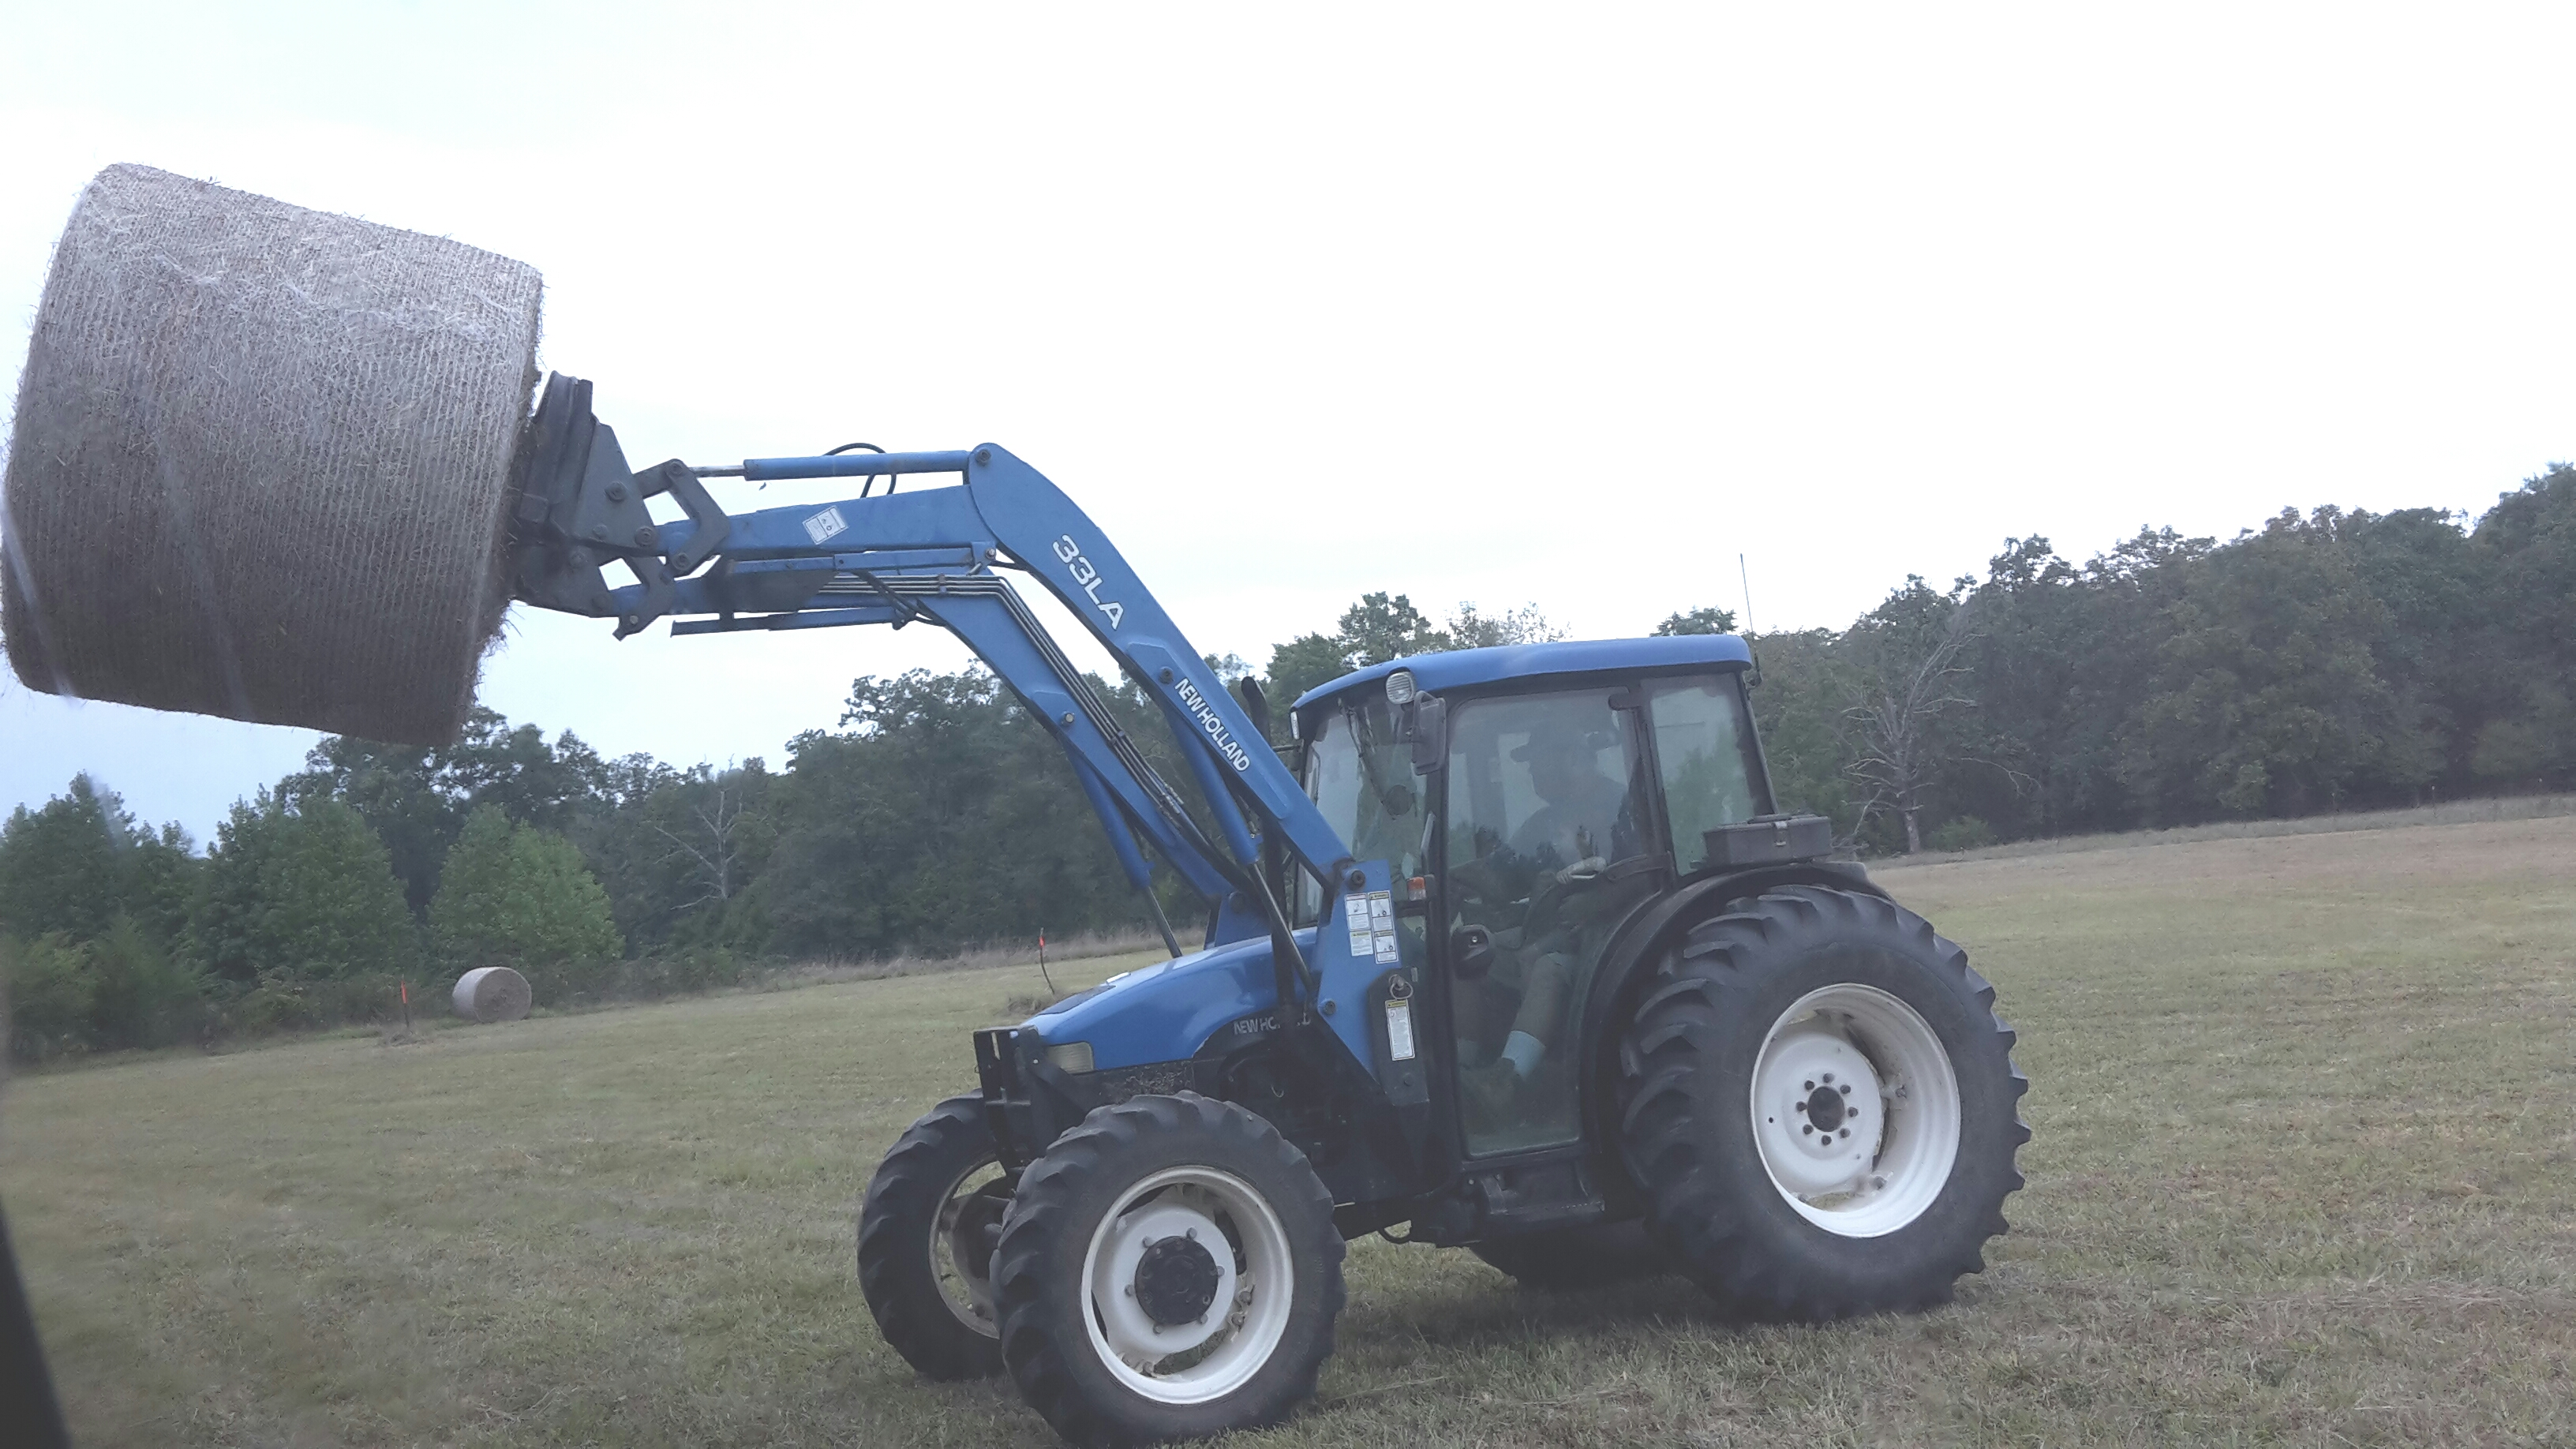 I have a 2001 New Holland TN75S cab tractor (which i purchased new